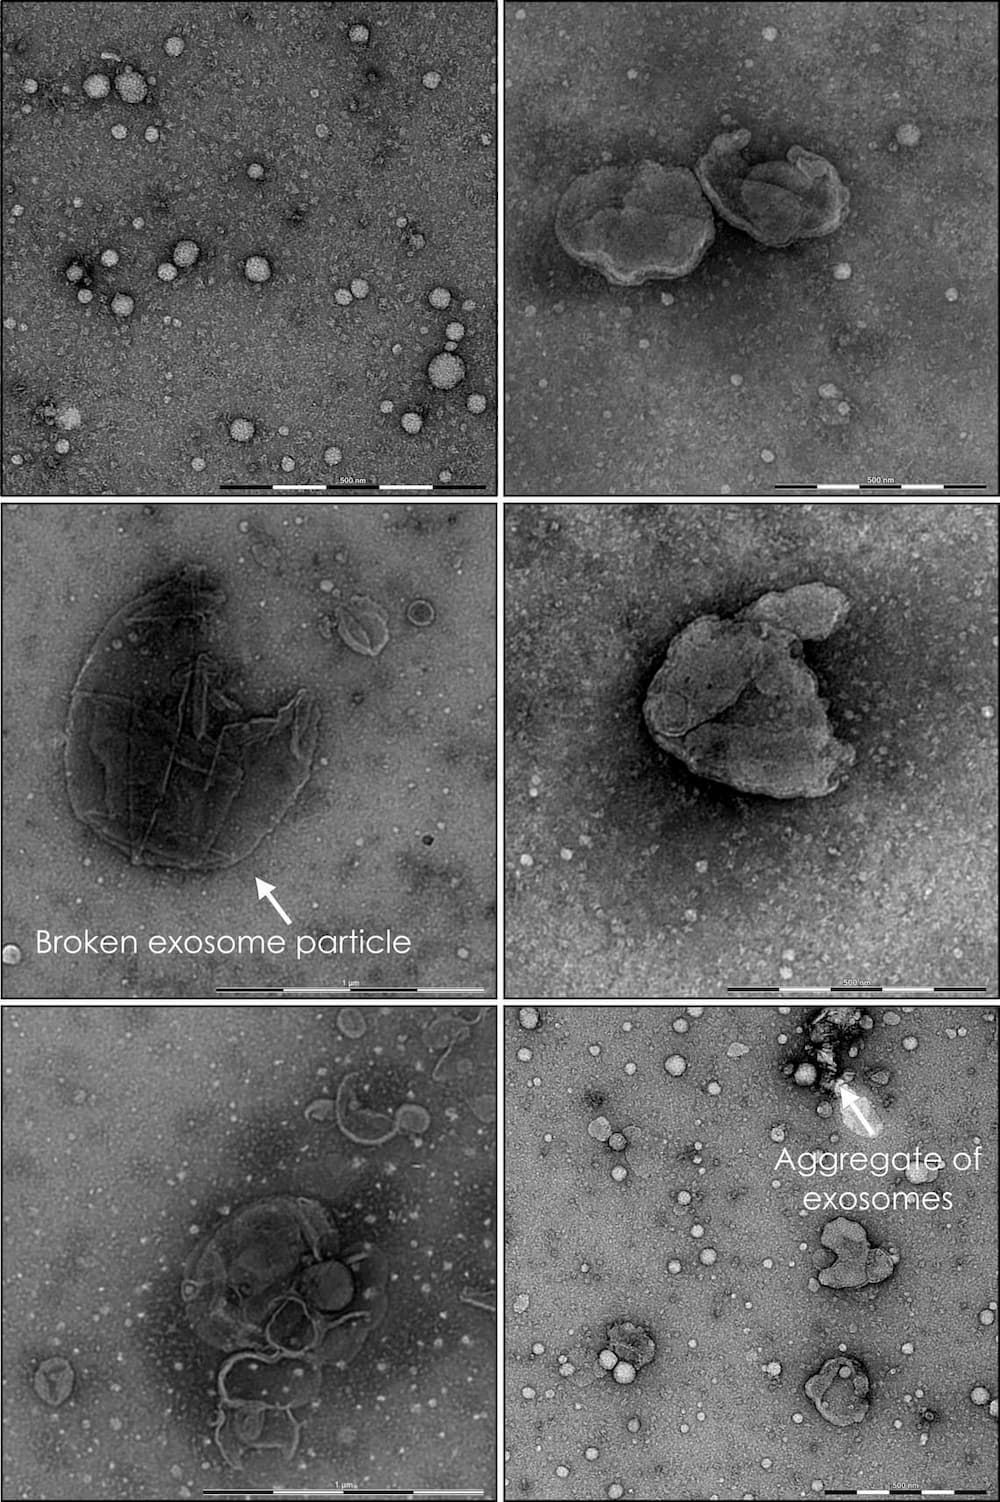 Several images of exosomes samples imaged using the nsTEM technique.